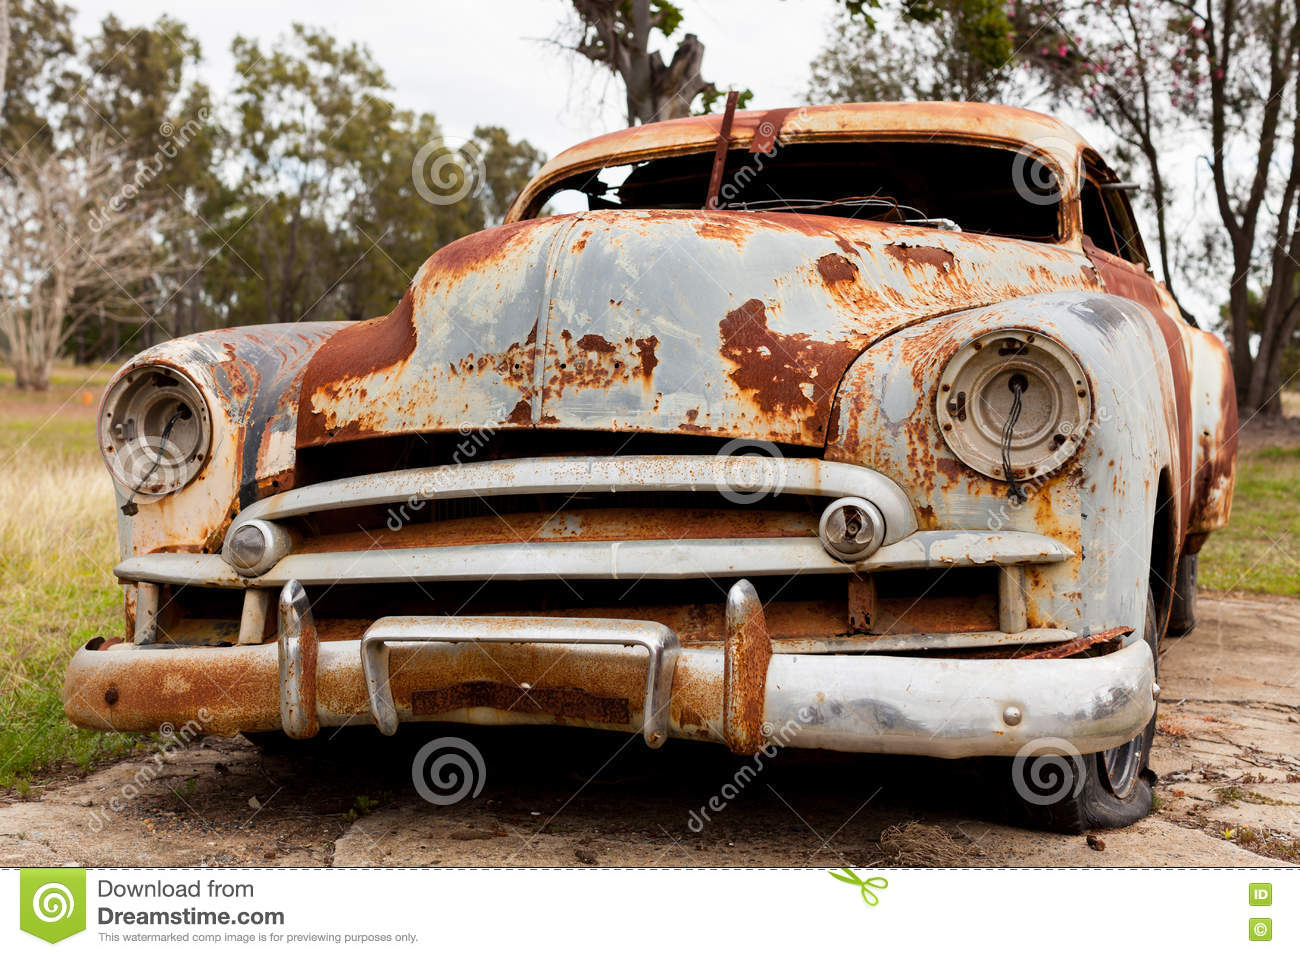 Rusty Old Car Stock Image Image Of Auto Rural Rusting - Old car images